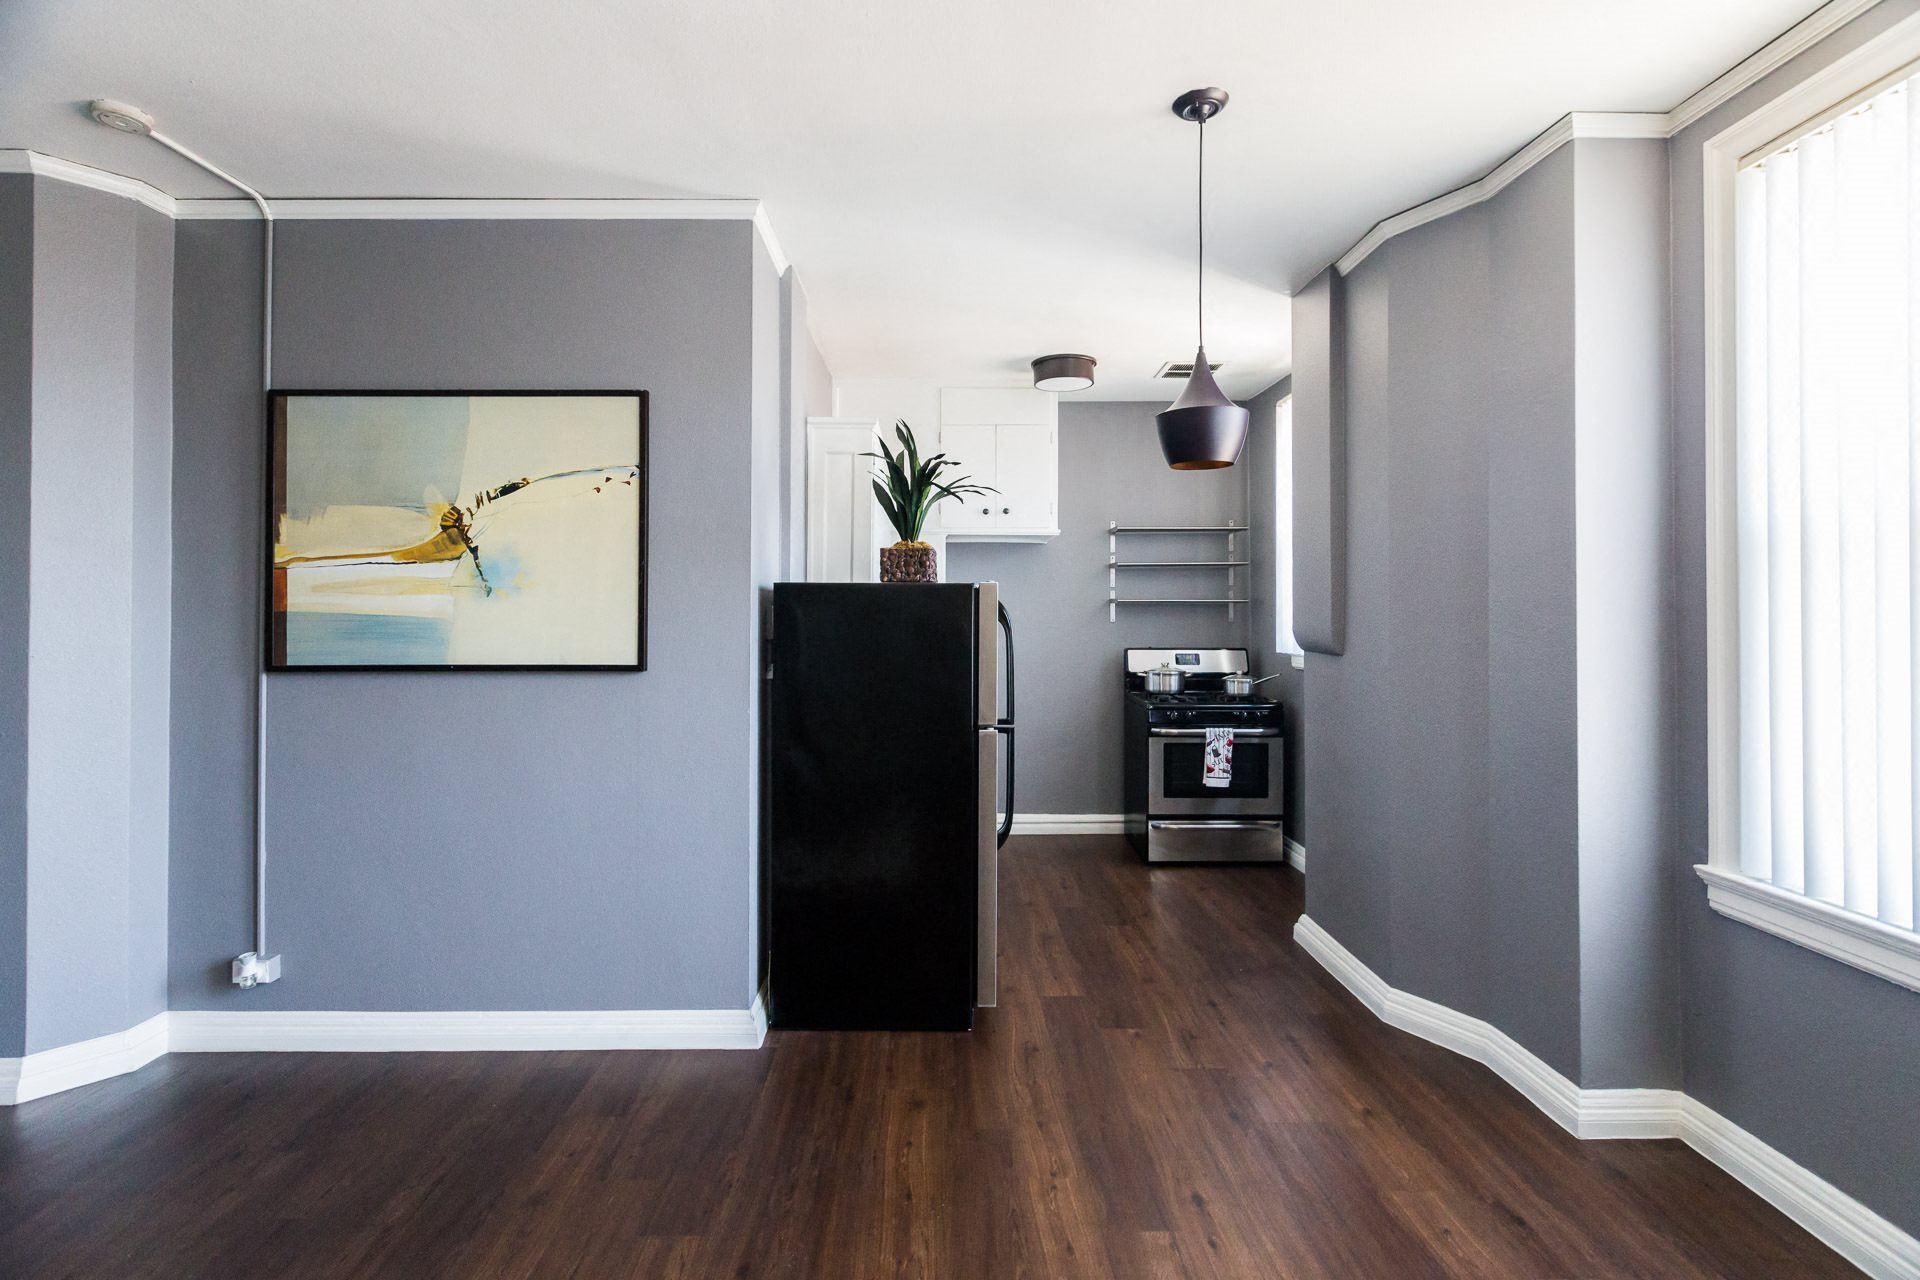 Interior Photo of Wilshire Royale Apartments, 2619 Wilshire Blvd, Los Angeles, CA 90057